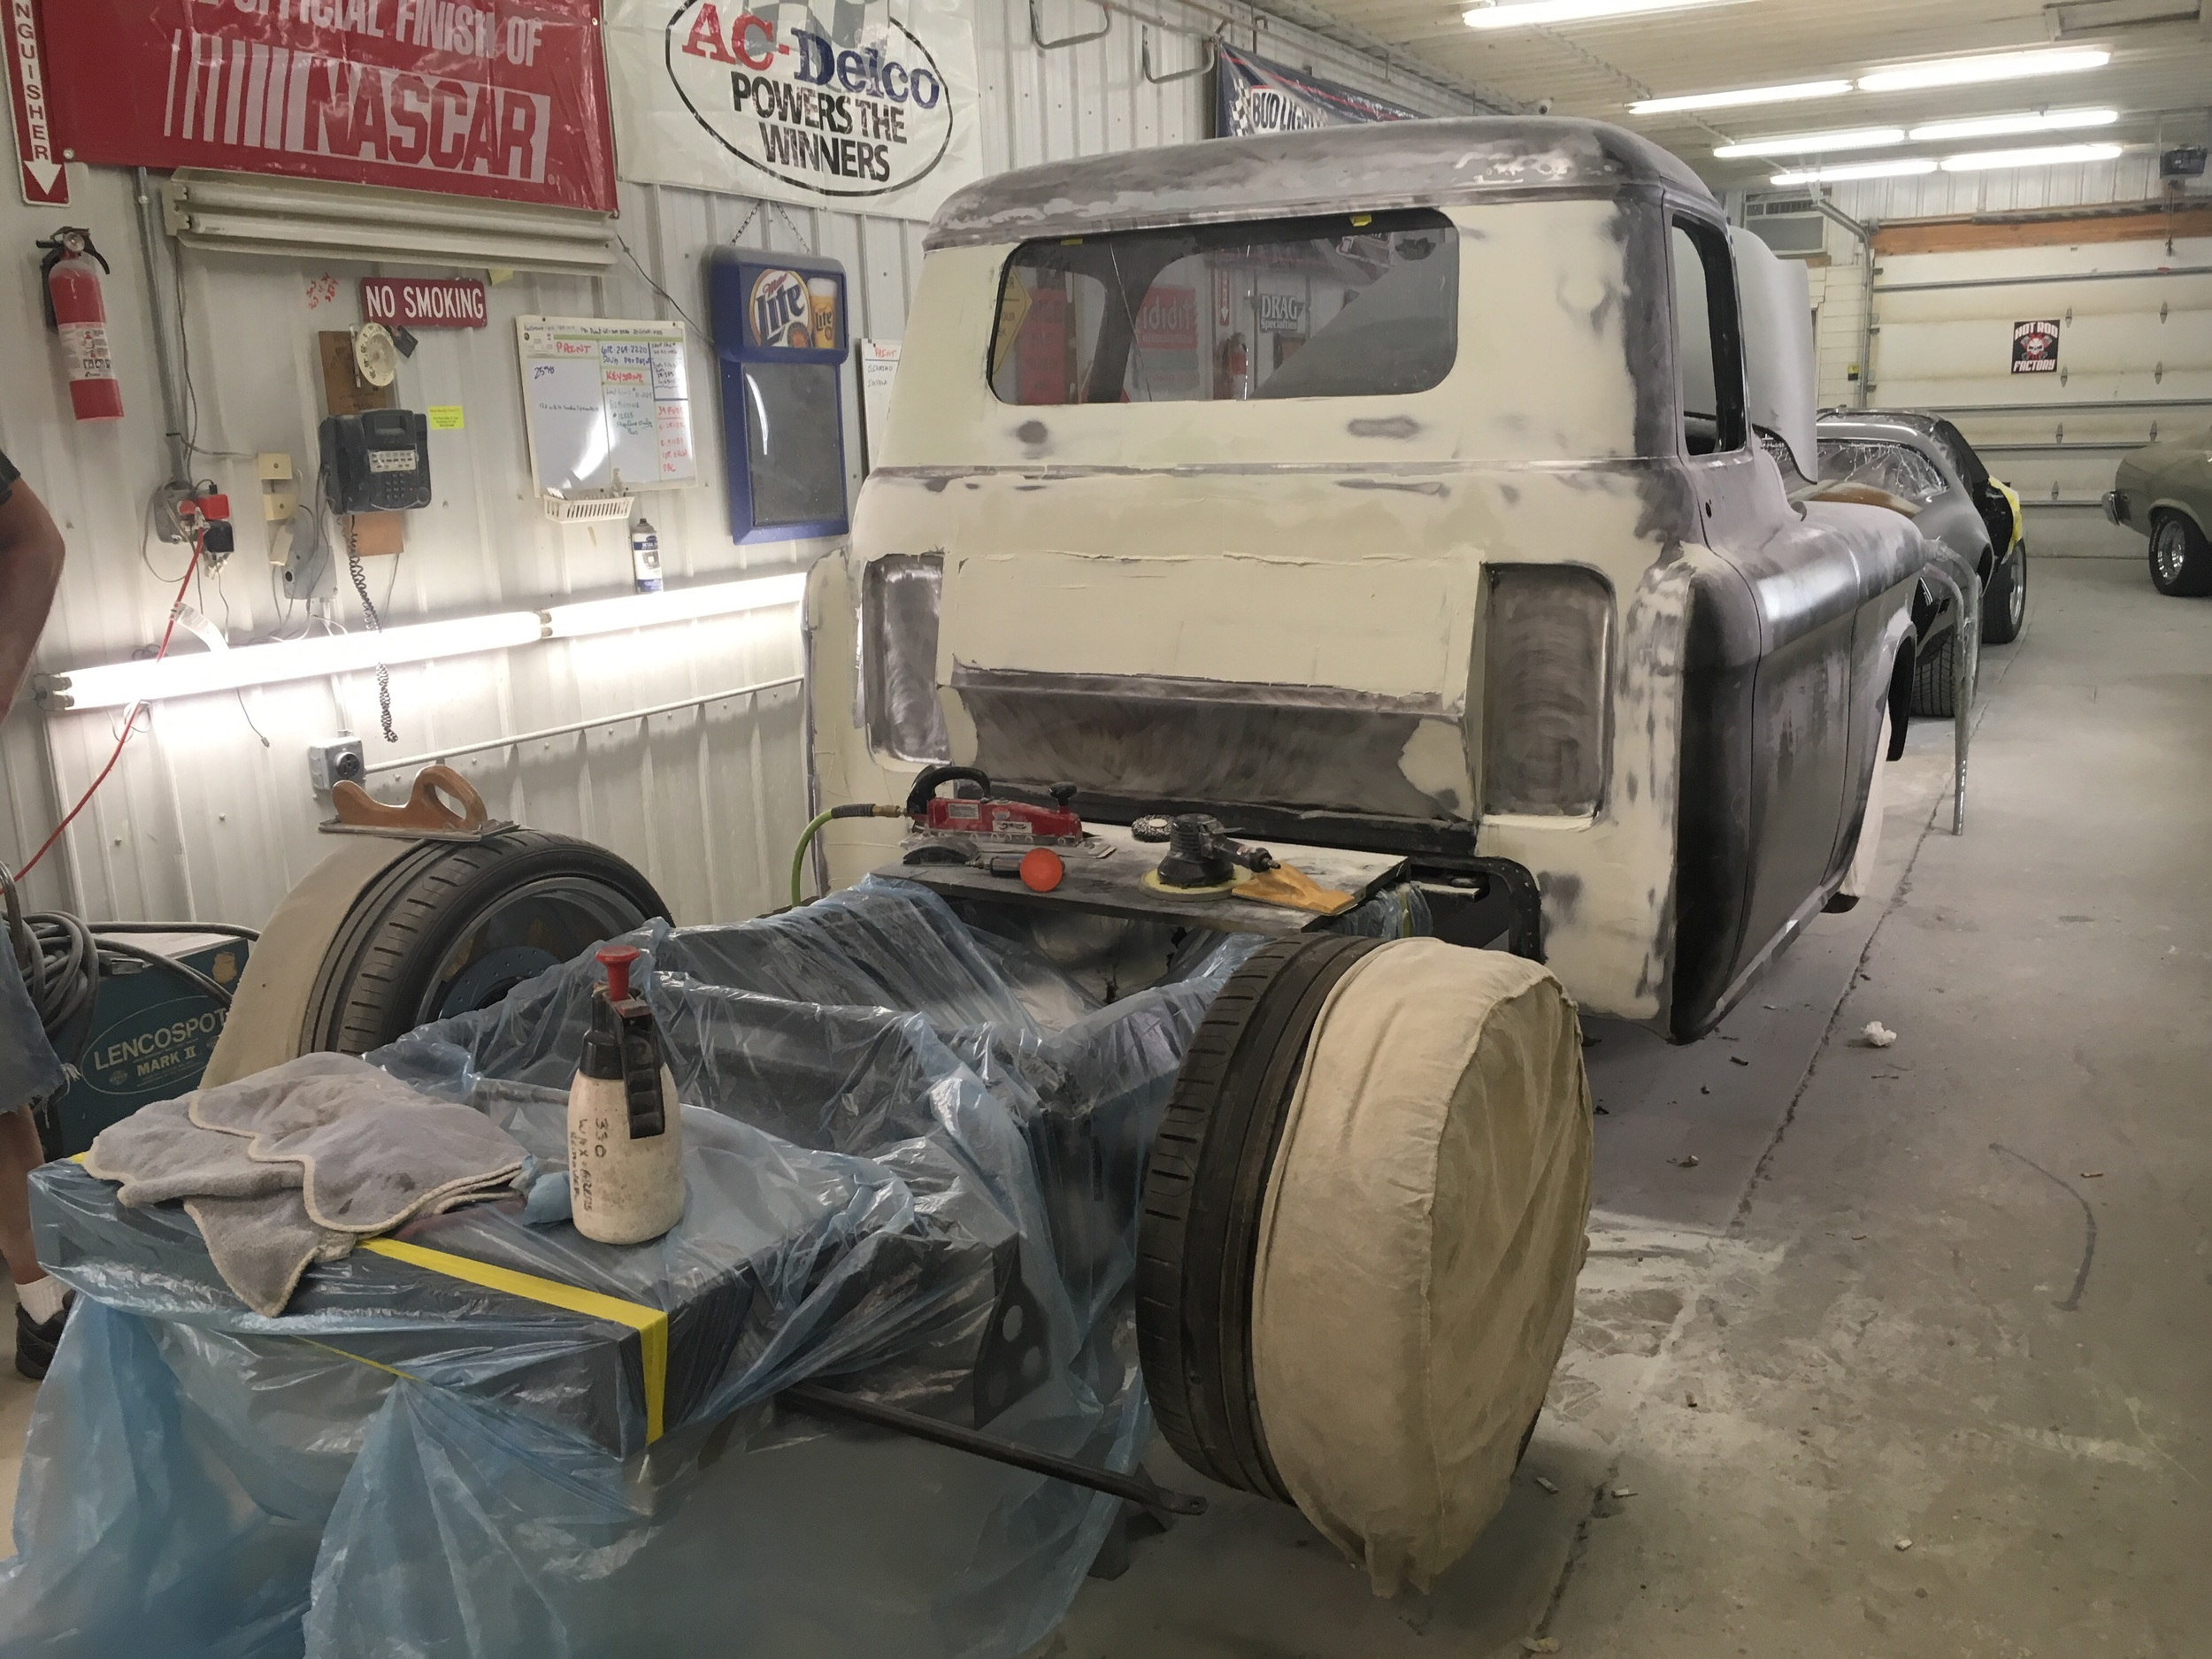 Starting body work process on 56 Chevy pickup truck cab.